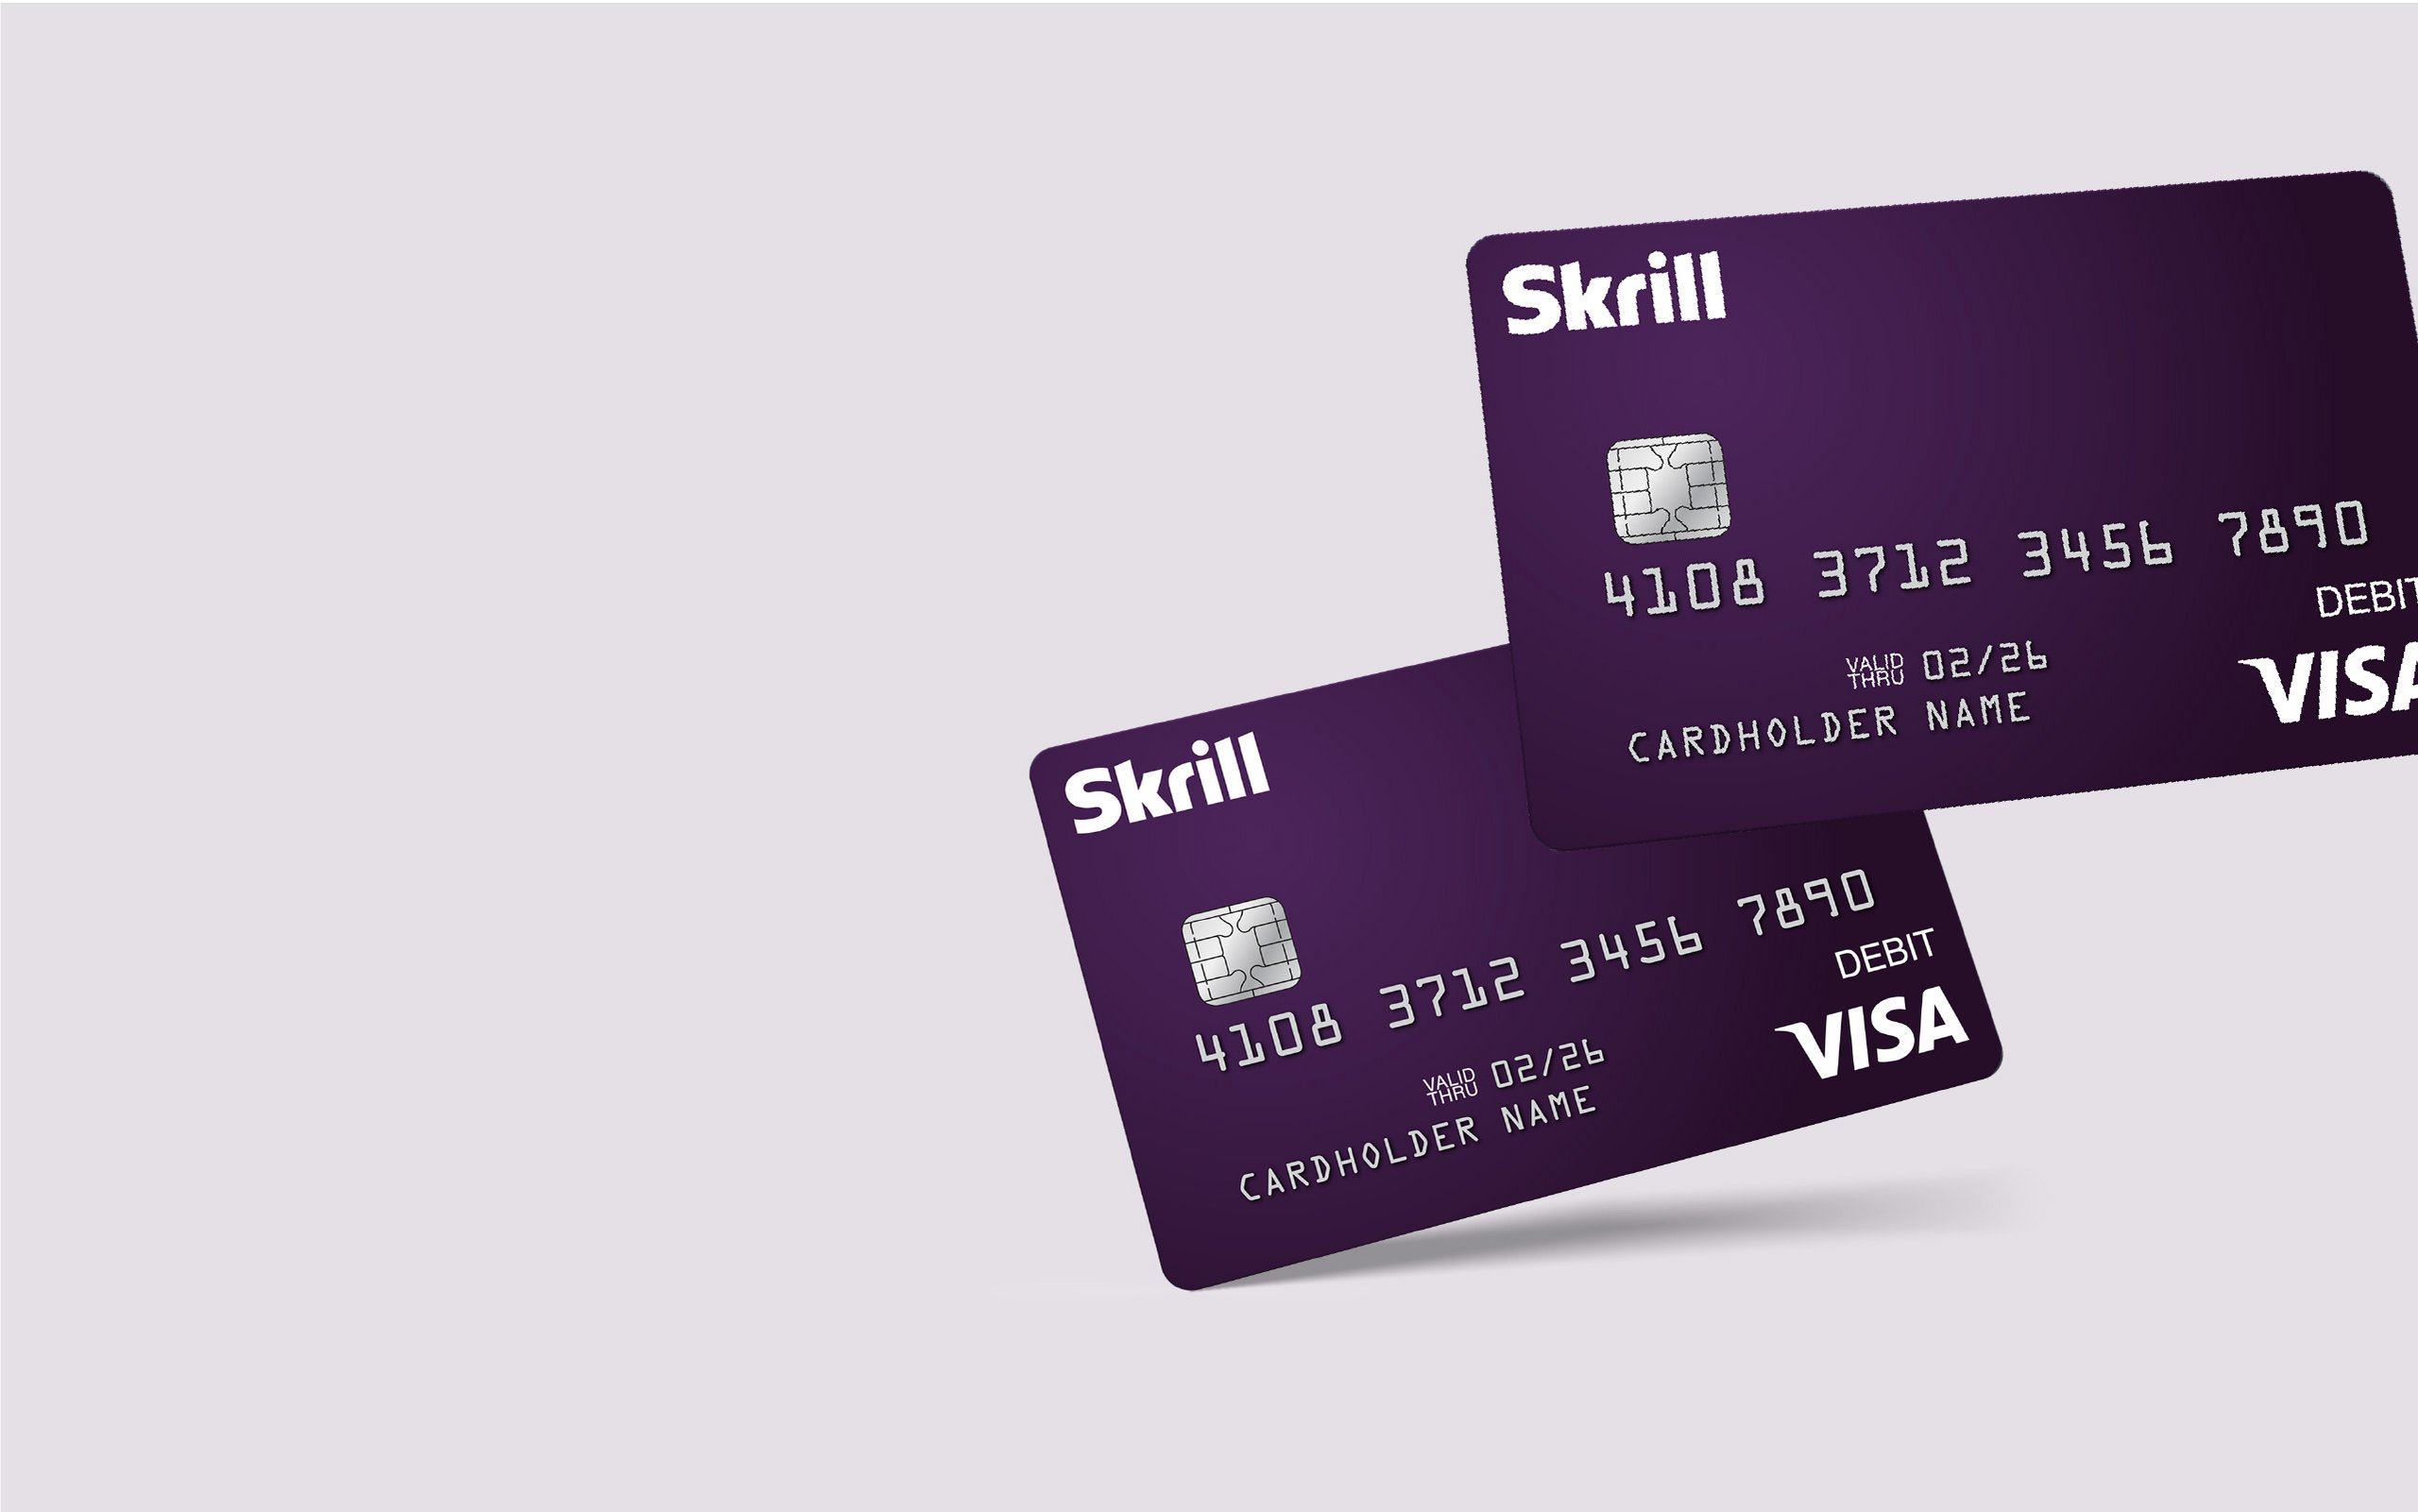 Skrill Visa card on a light purple background